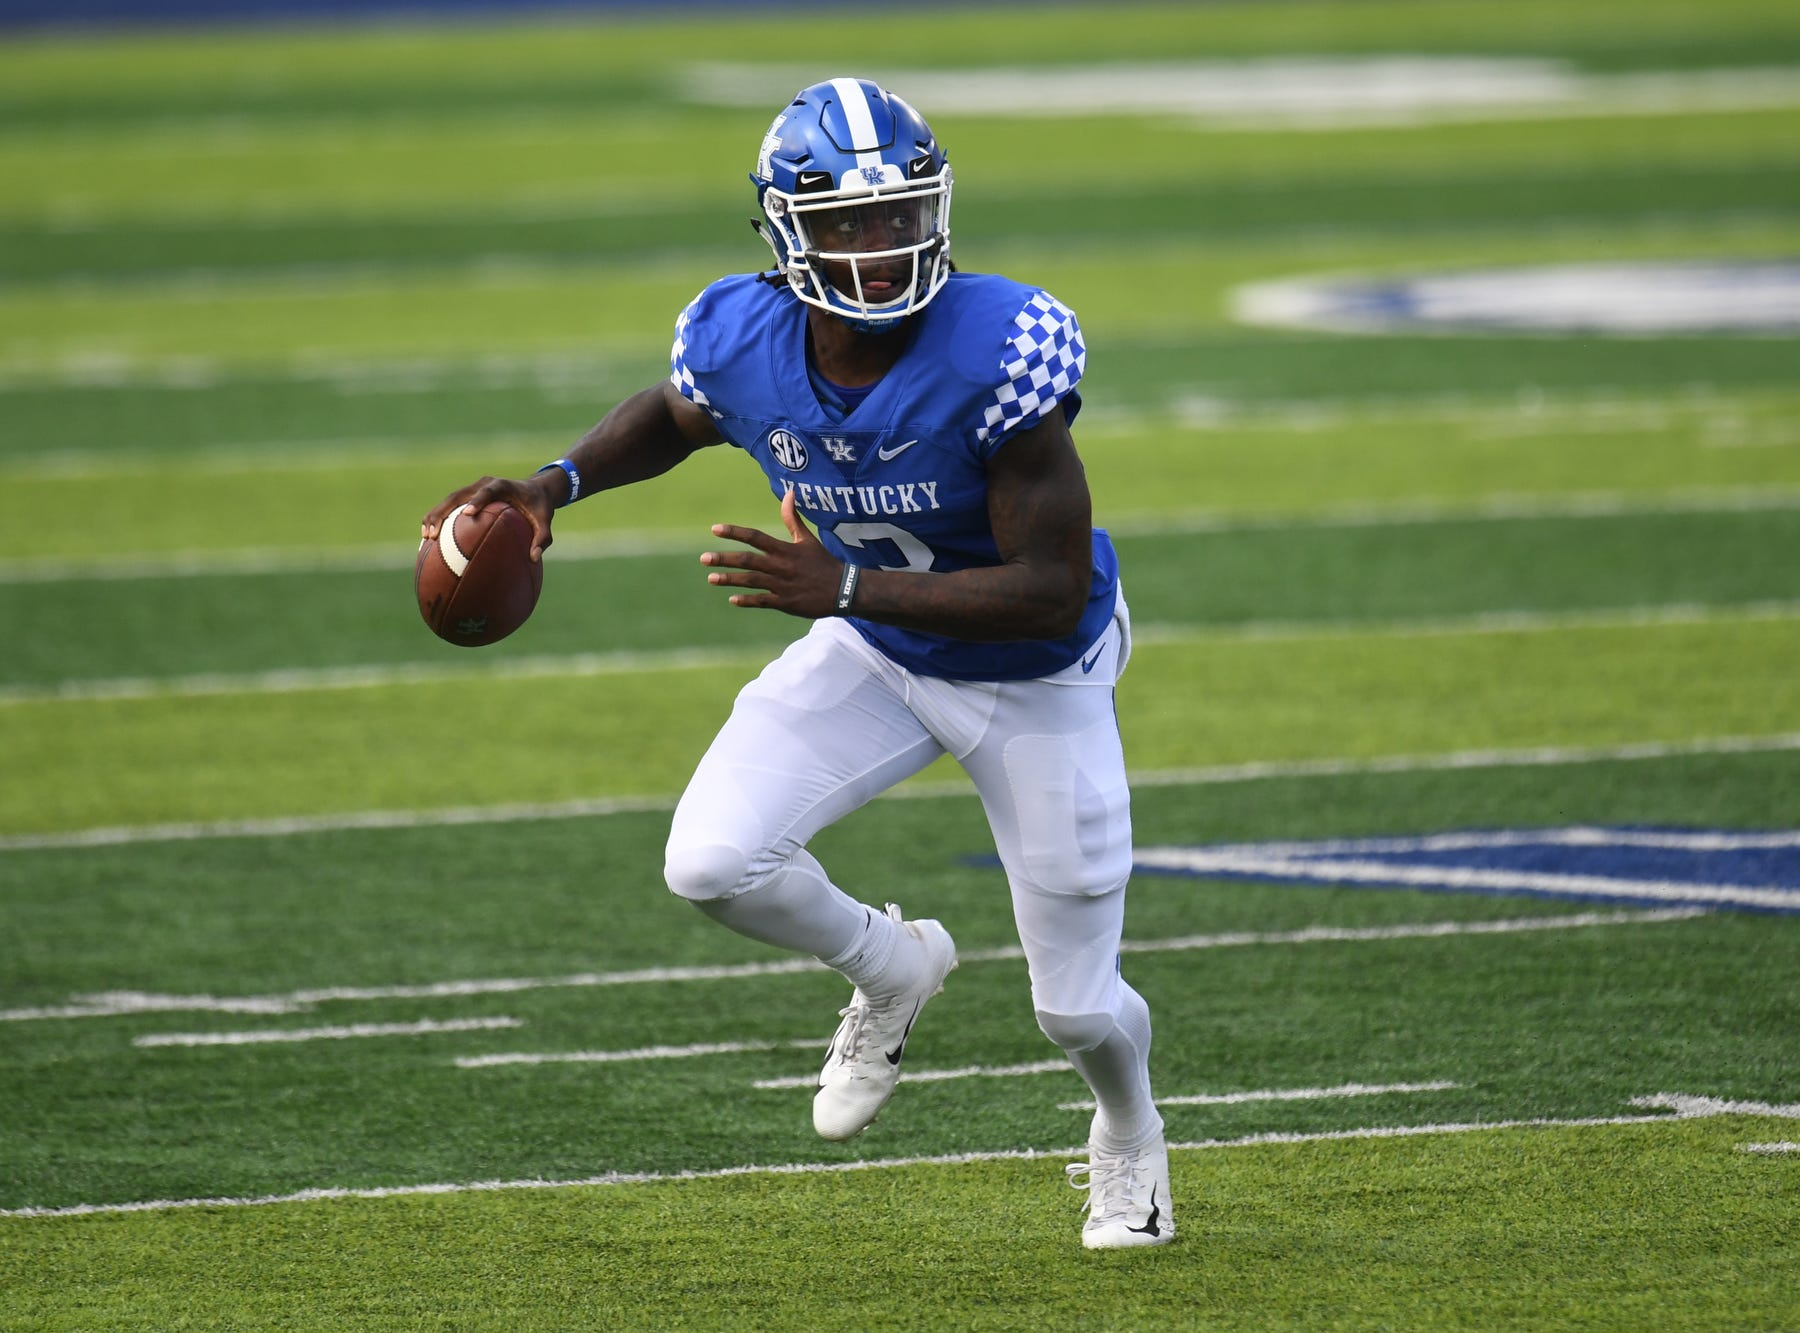 UK QB Terry Wilson during the University of Kentucky football game against Central Michigan at Kroger Field in Lexington, Kentucky on Saturday, September 1, 2018.